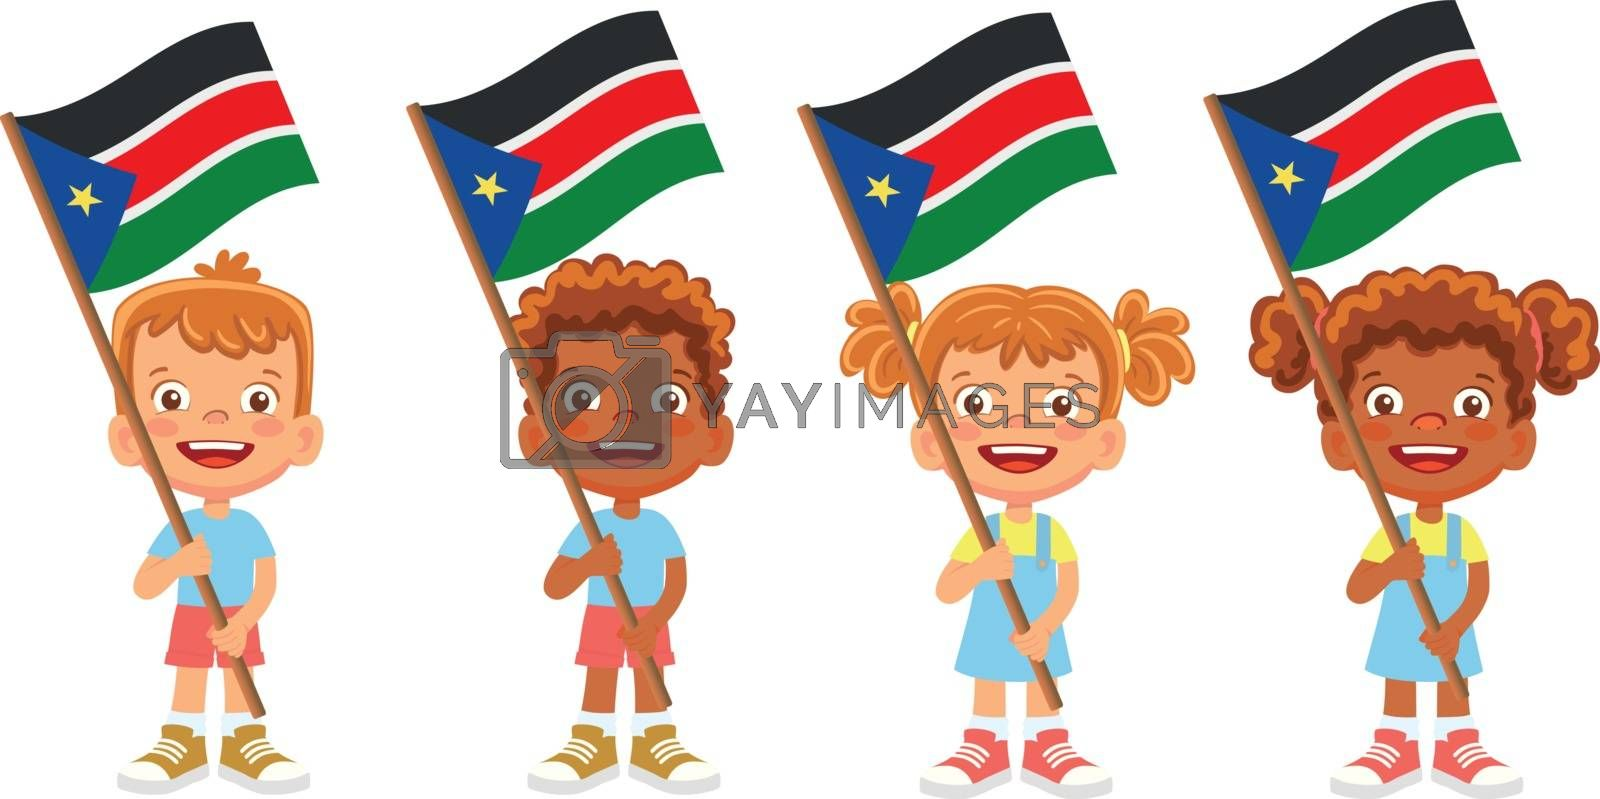 South Sudan flag in hand. Children holding flag. National flag of South Sudan vector